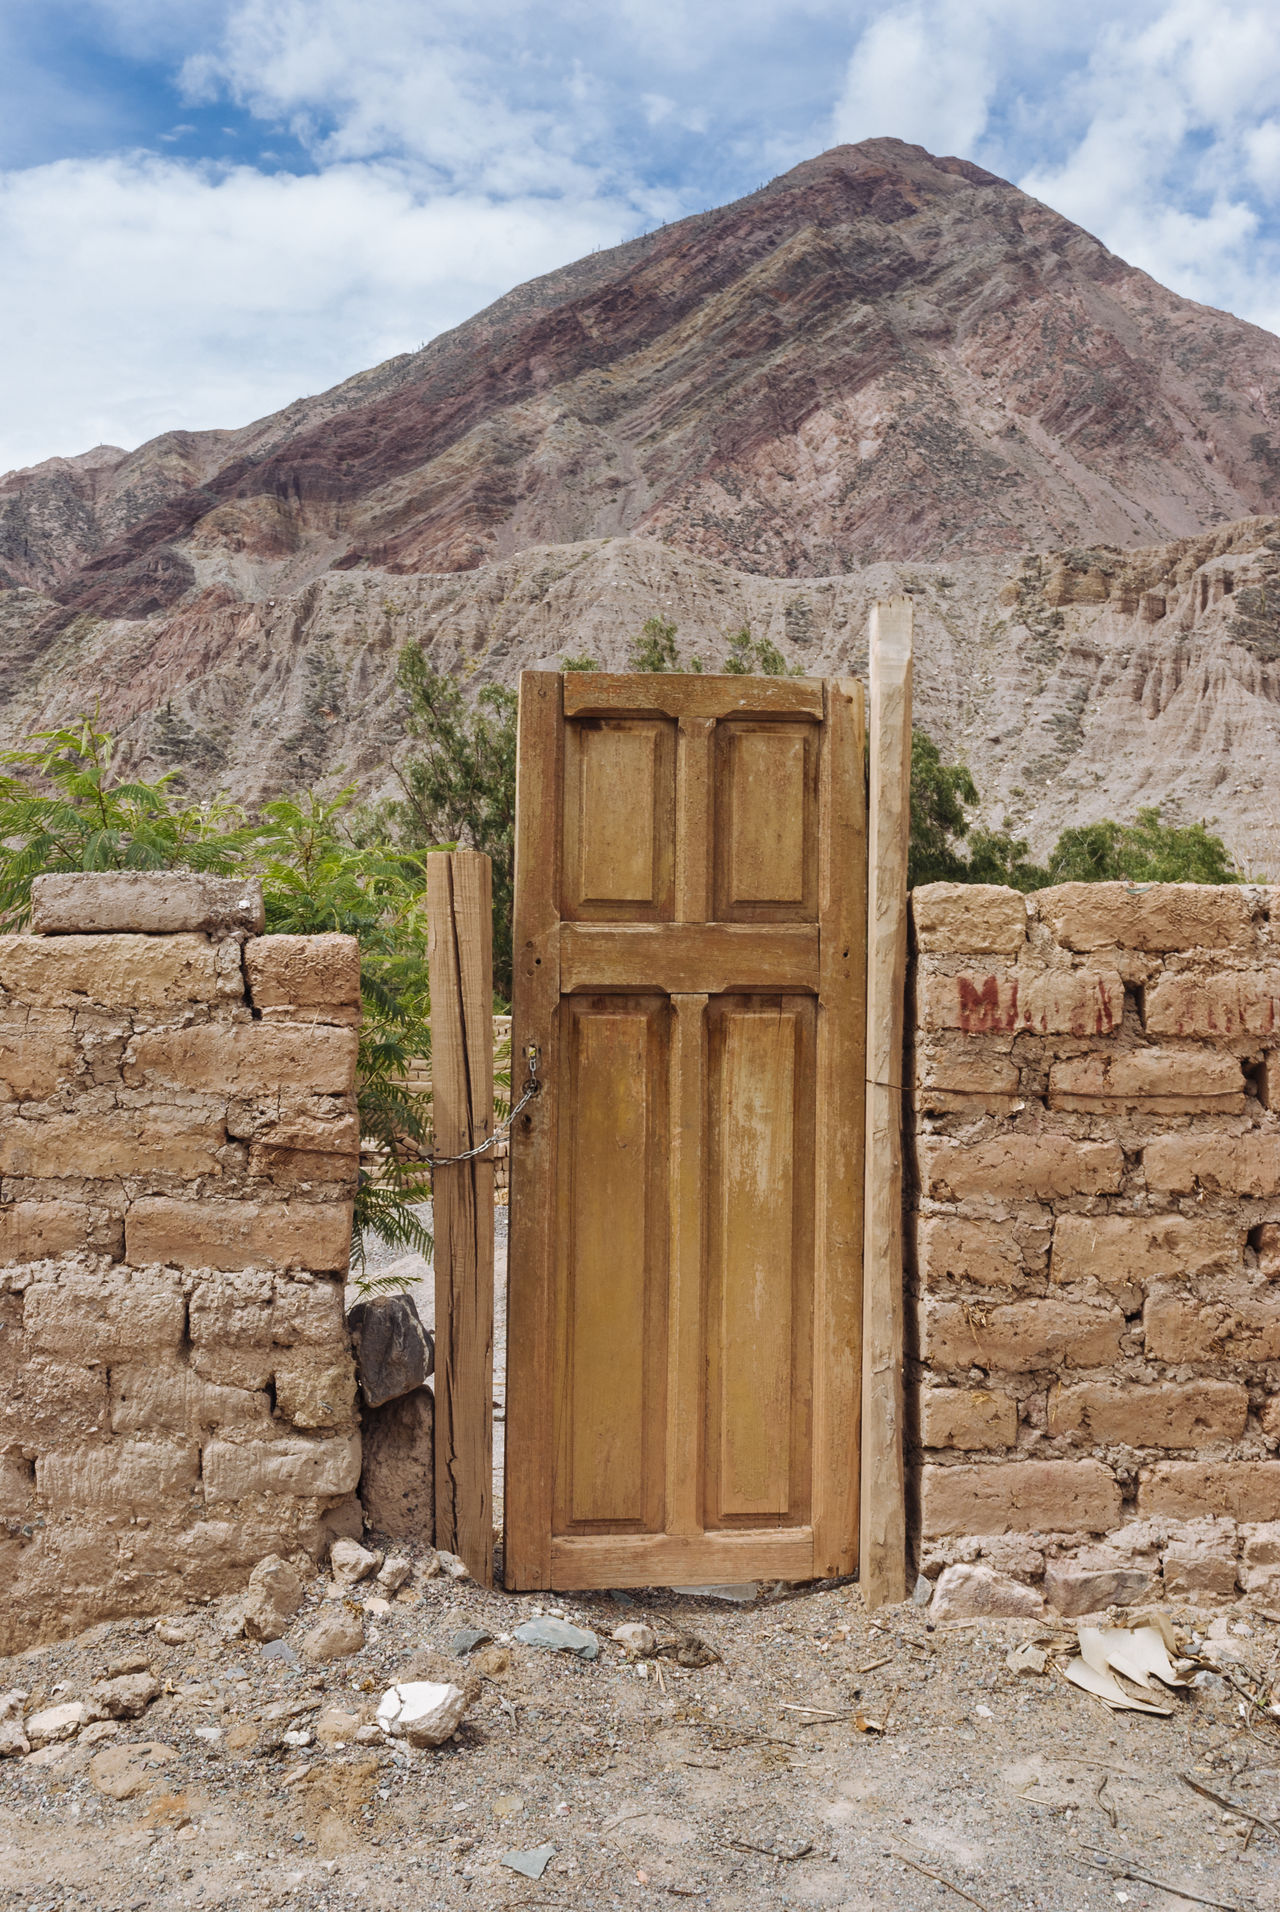 Andes Argentina Built Structure Door Jujuy Province Landscape Mountain Outdoor Scenics Tourism